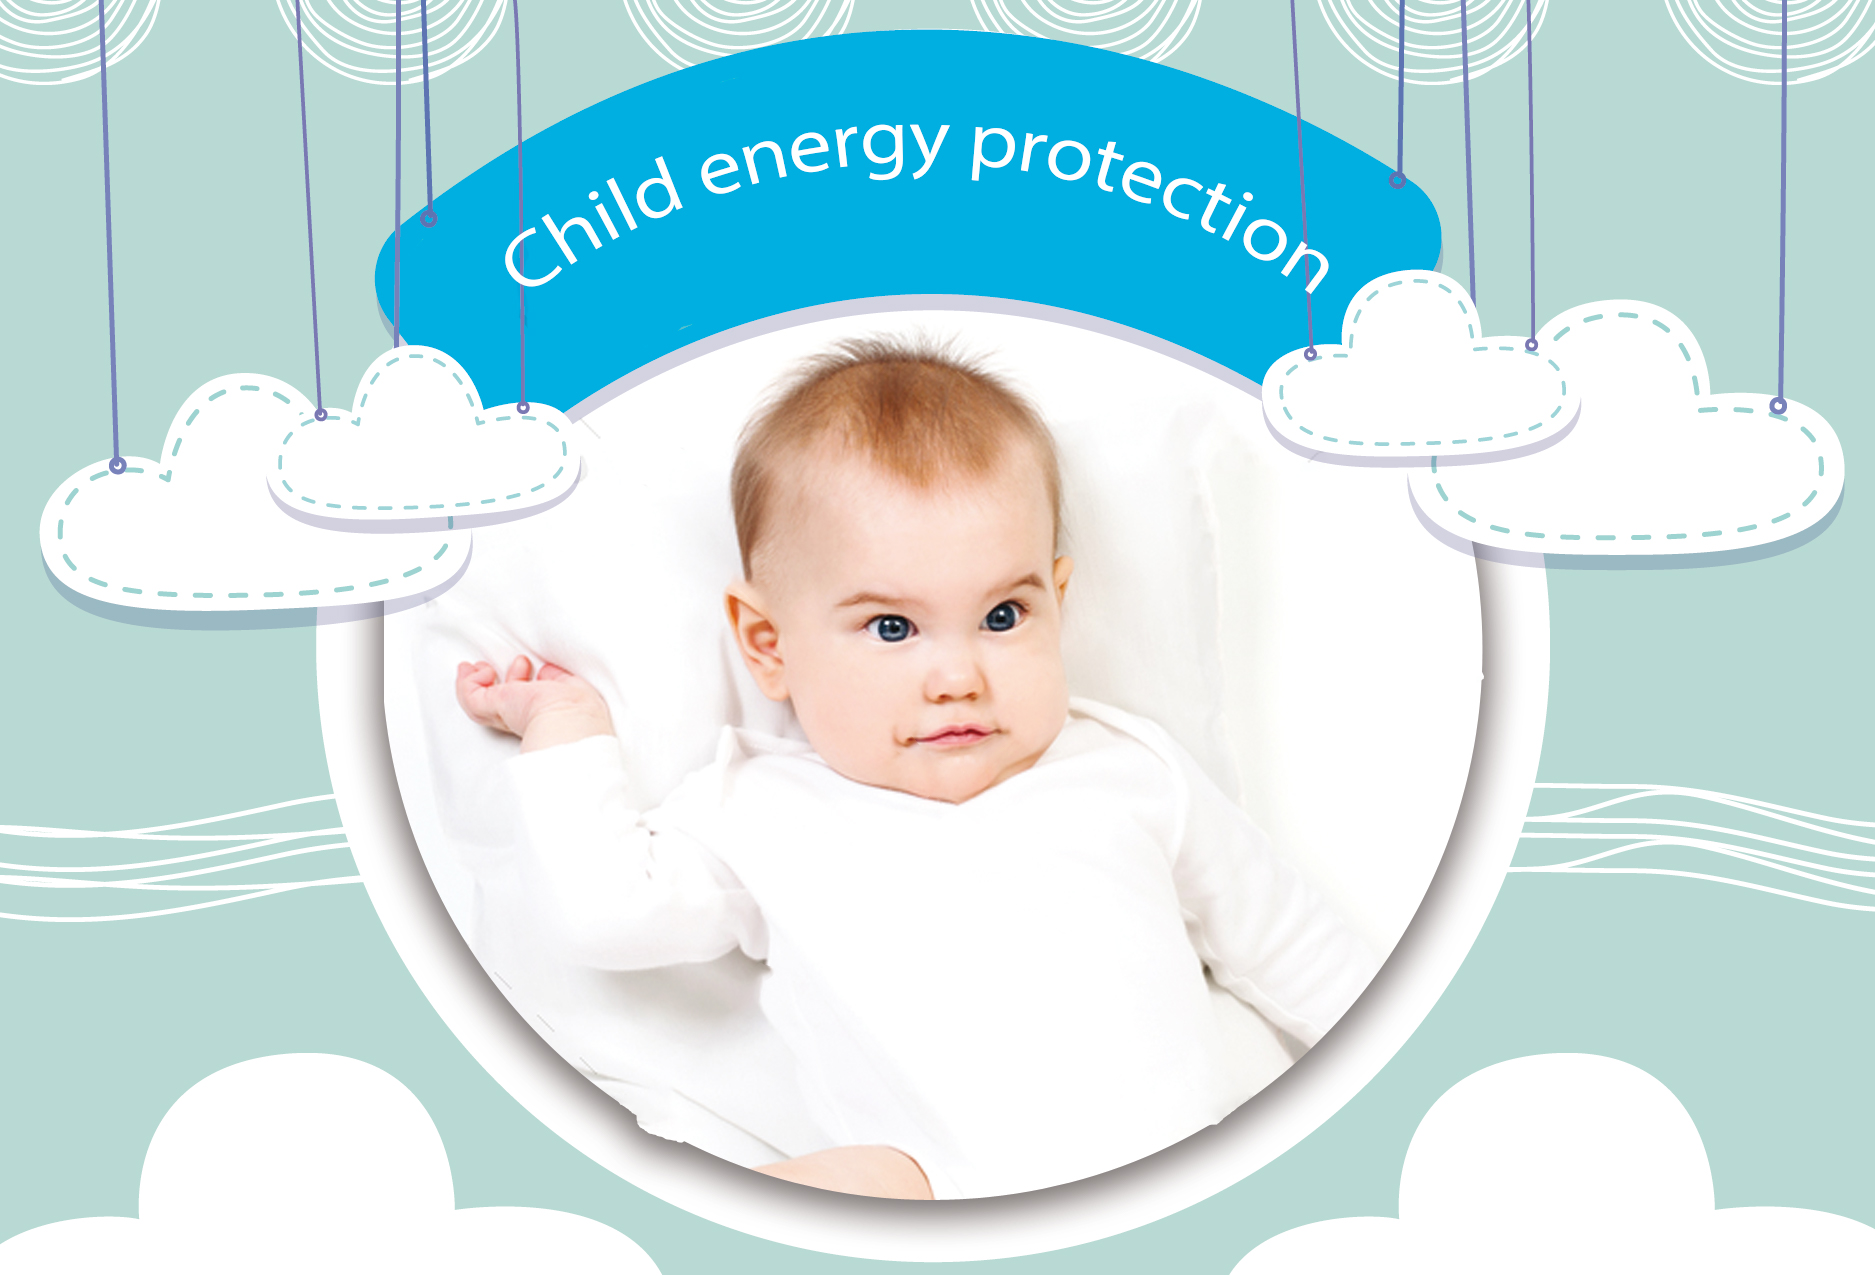 Child energy protection